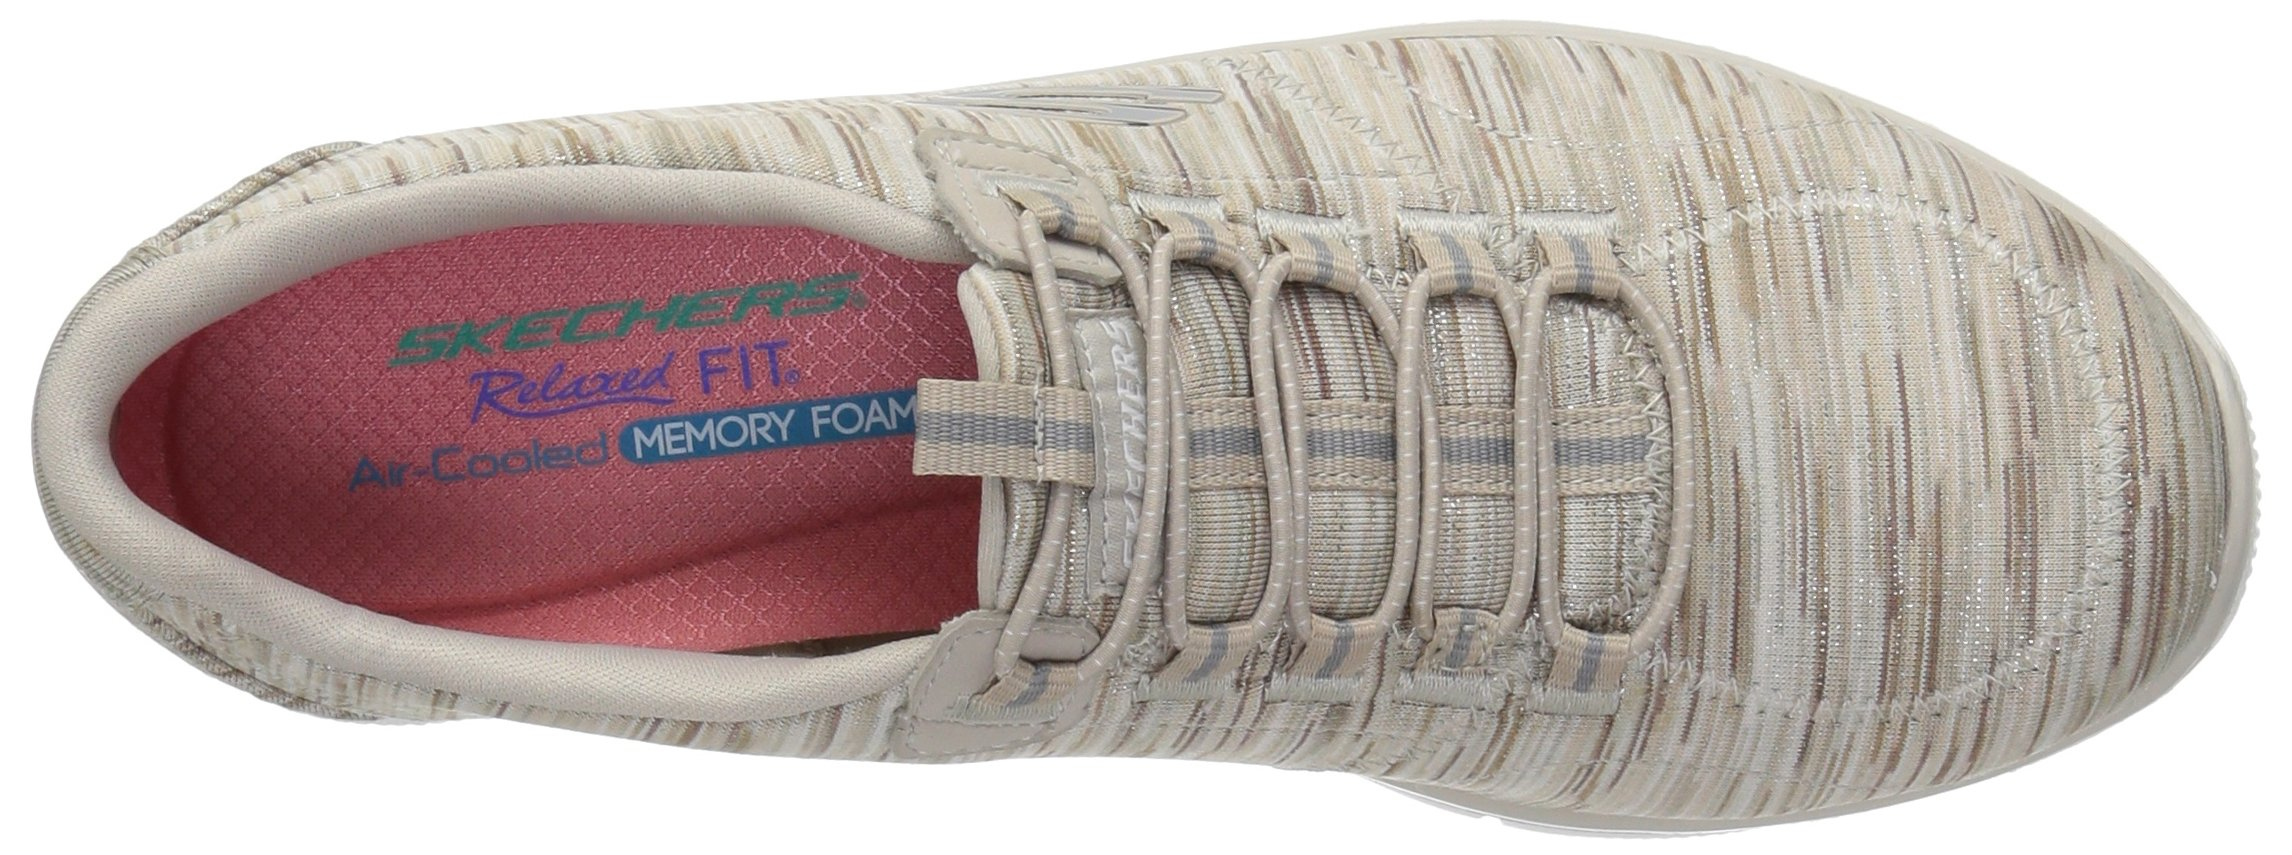 Skechers Women's Empire Game On Memory Foam Sneakers Shoes, Taupe, 6 B(M) US by Skechers (Image #8)